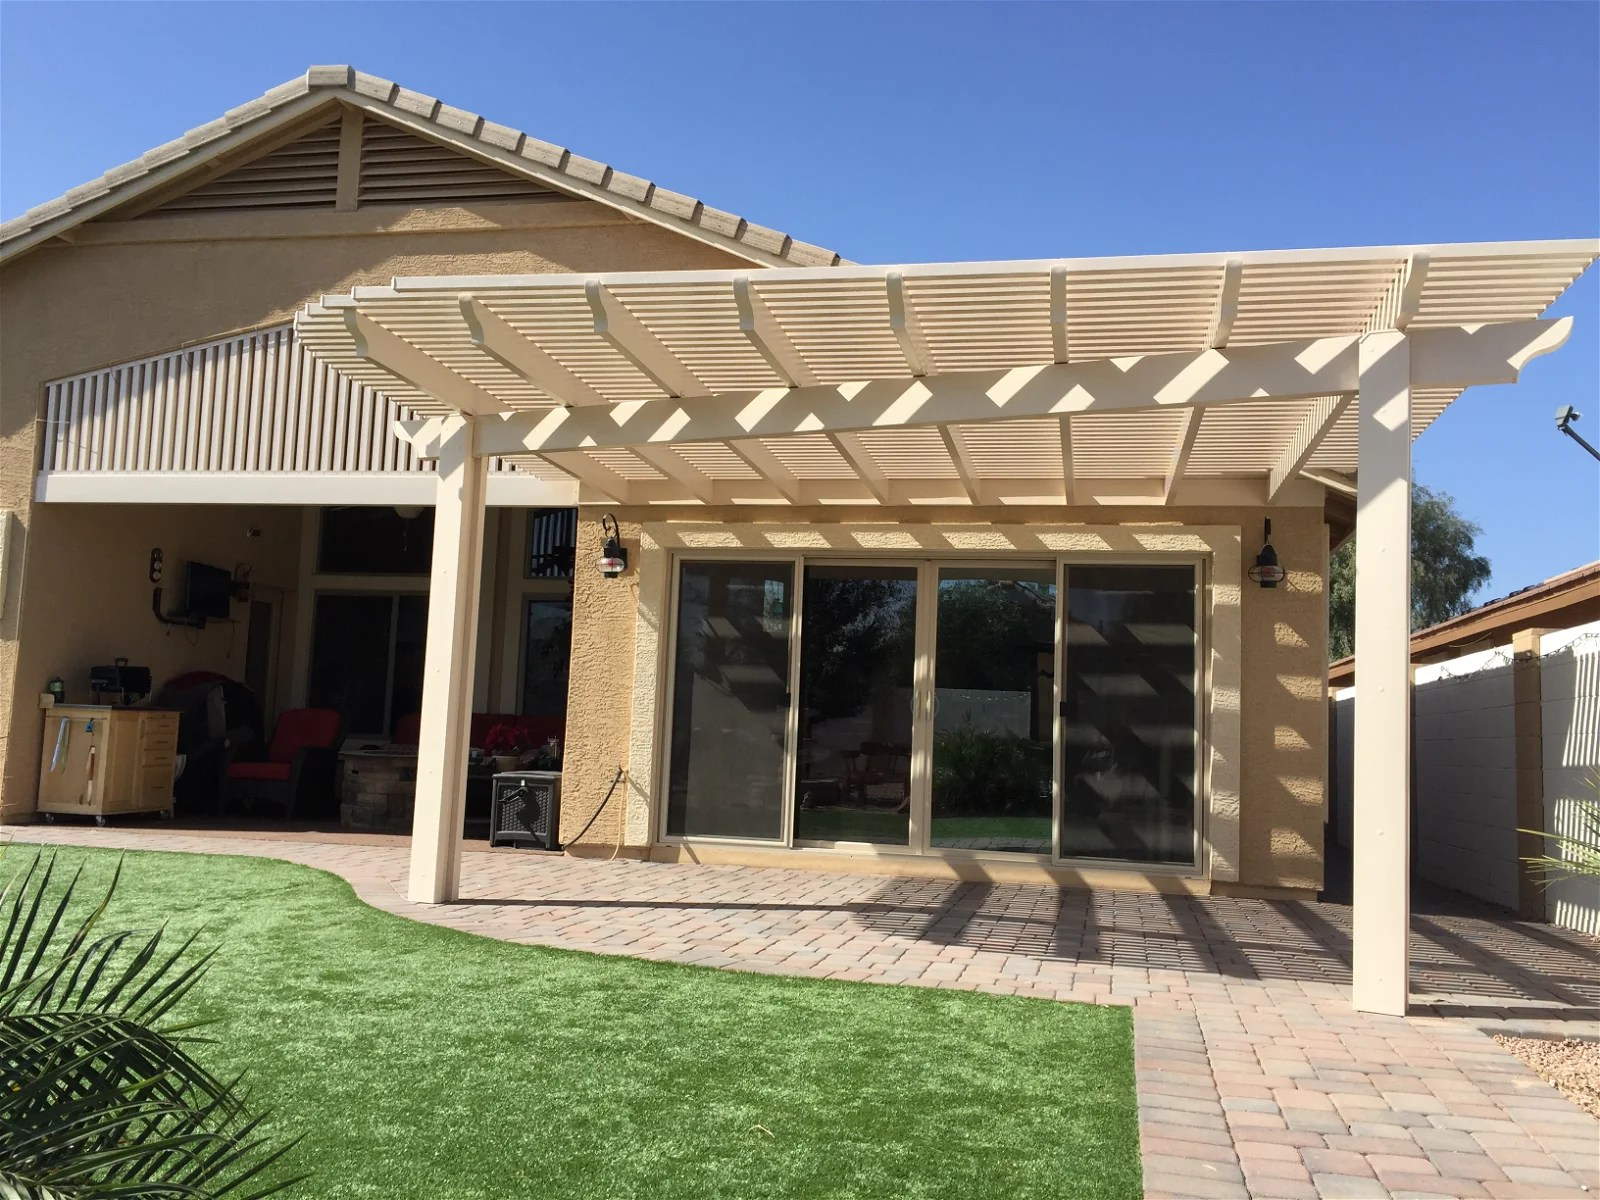 alumawood patio cover over new pavers